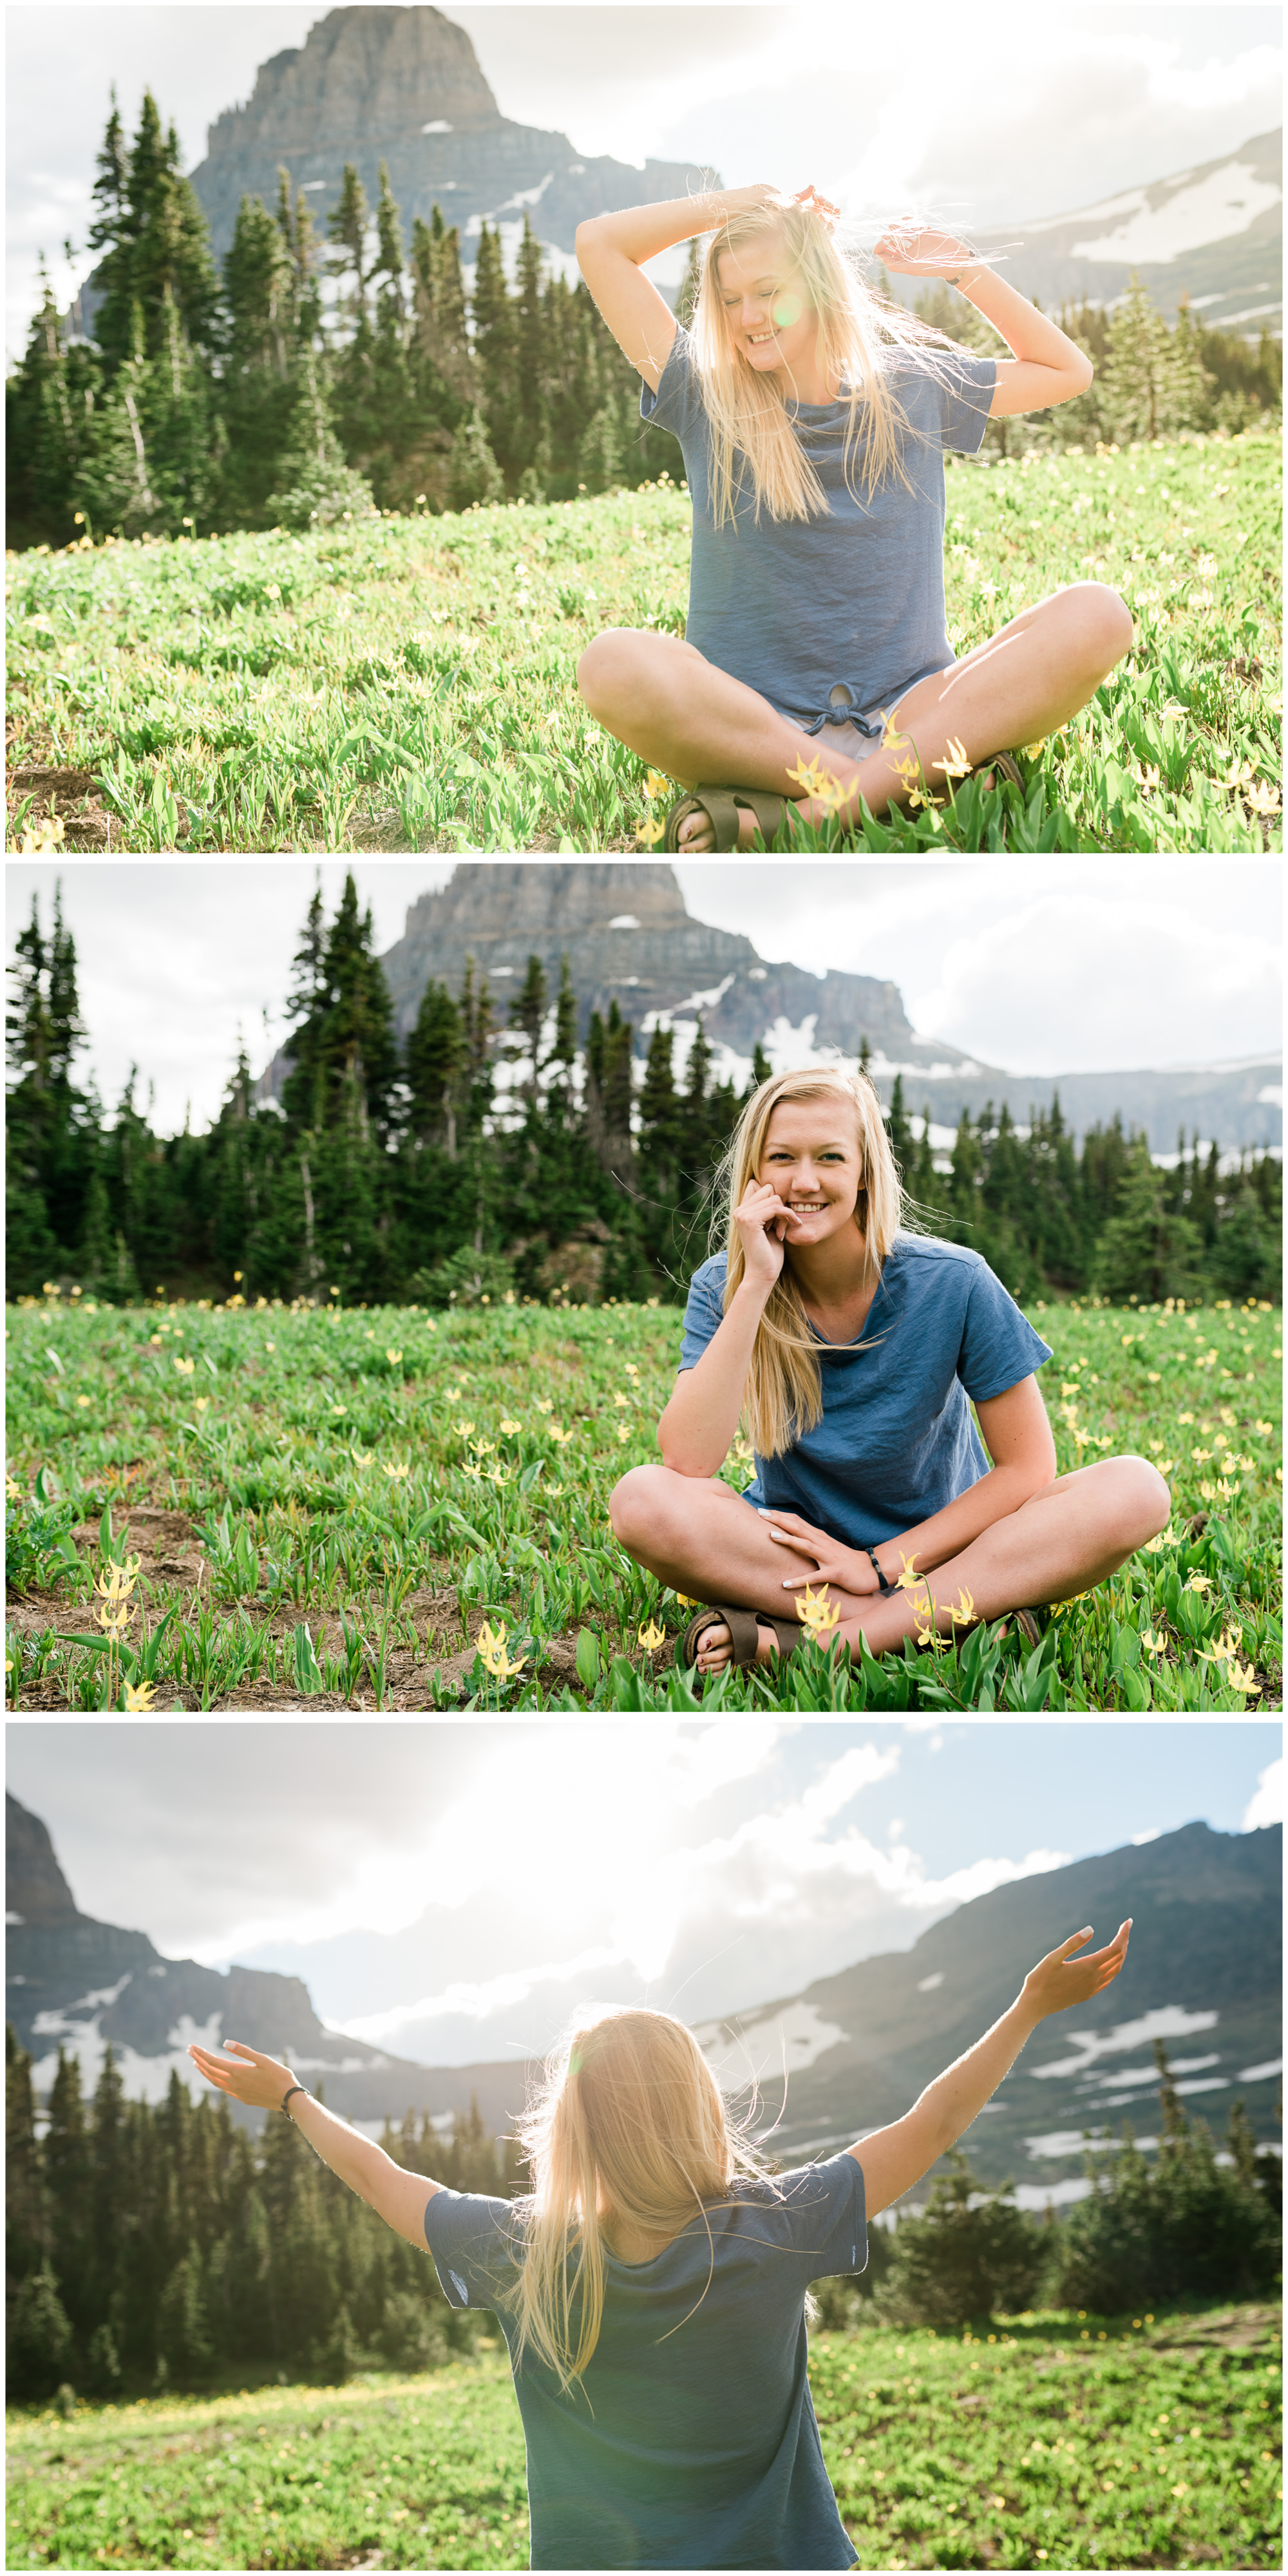 Kim's Glacier National Park Senior Session